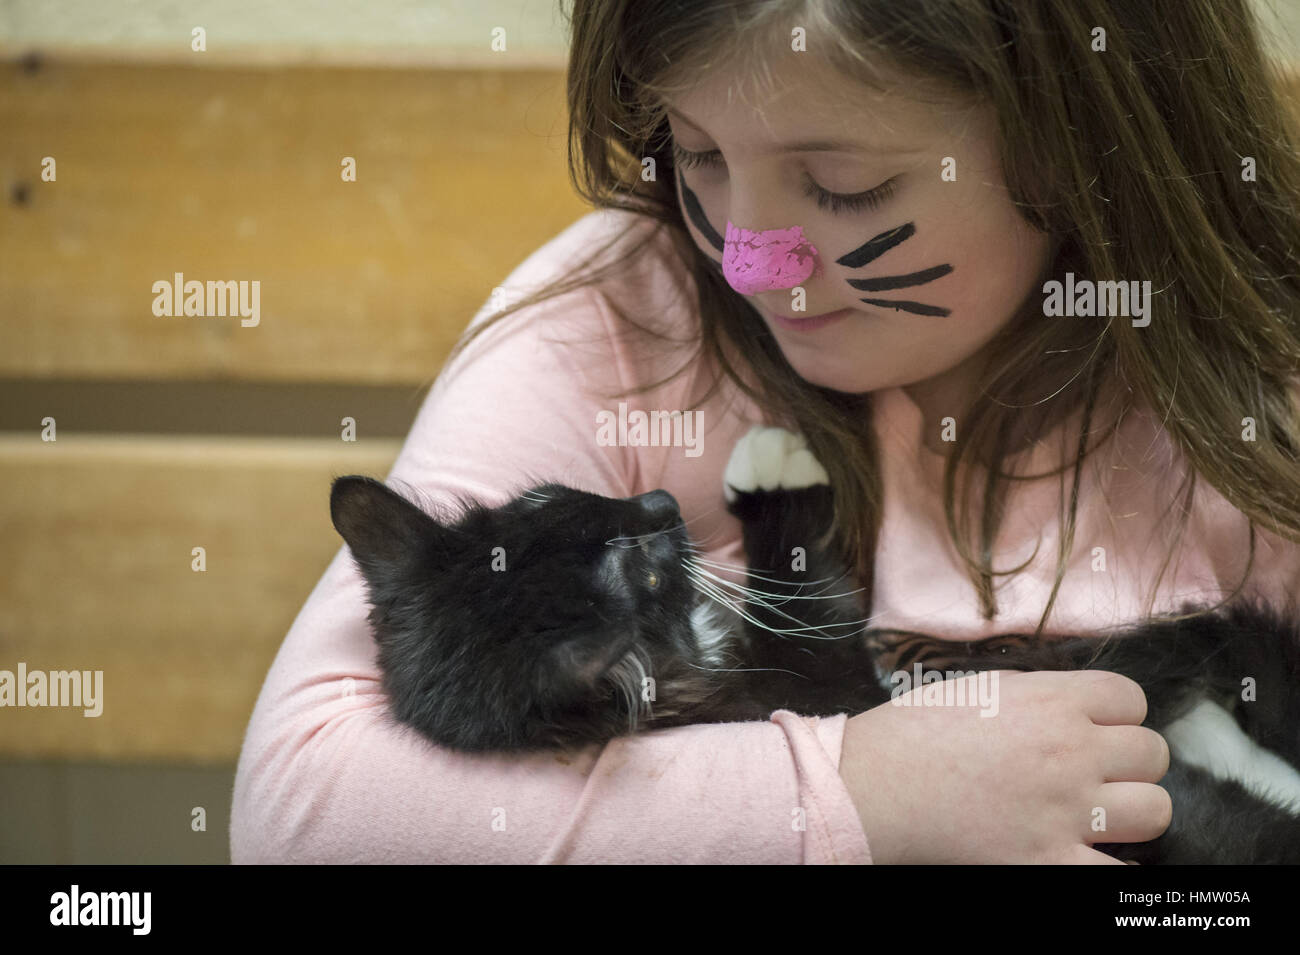 Wantagh, USA. 5th Feb, 2017. Ayla Shah, 6 1/2, of Merrick, is holding Salsa, a 5 month old female kitten available - Stock Image